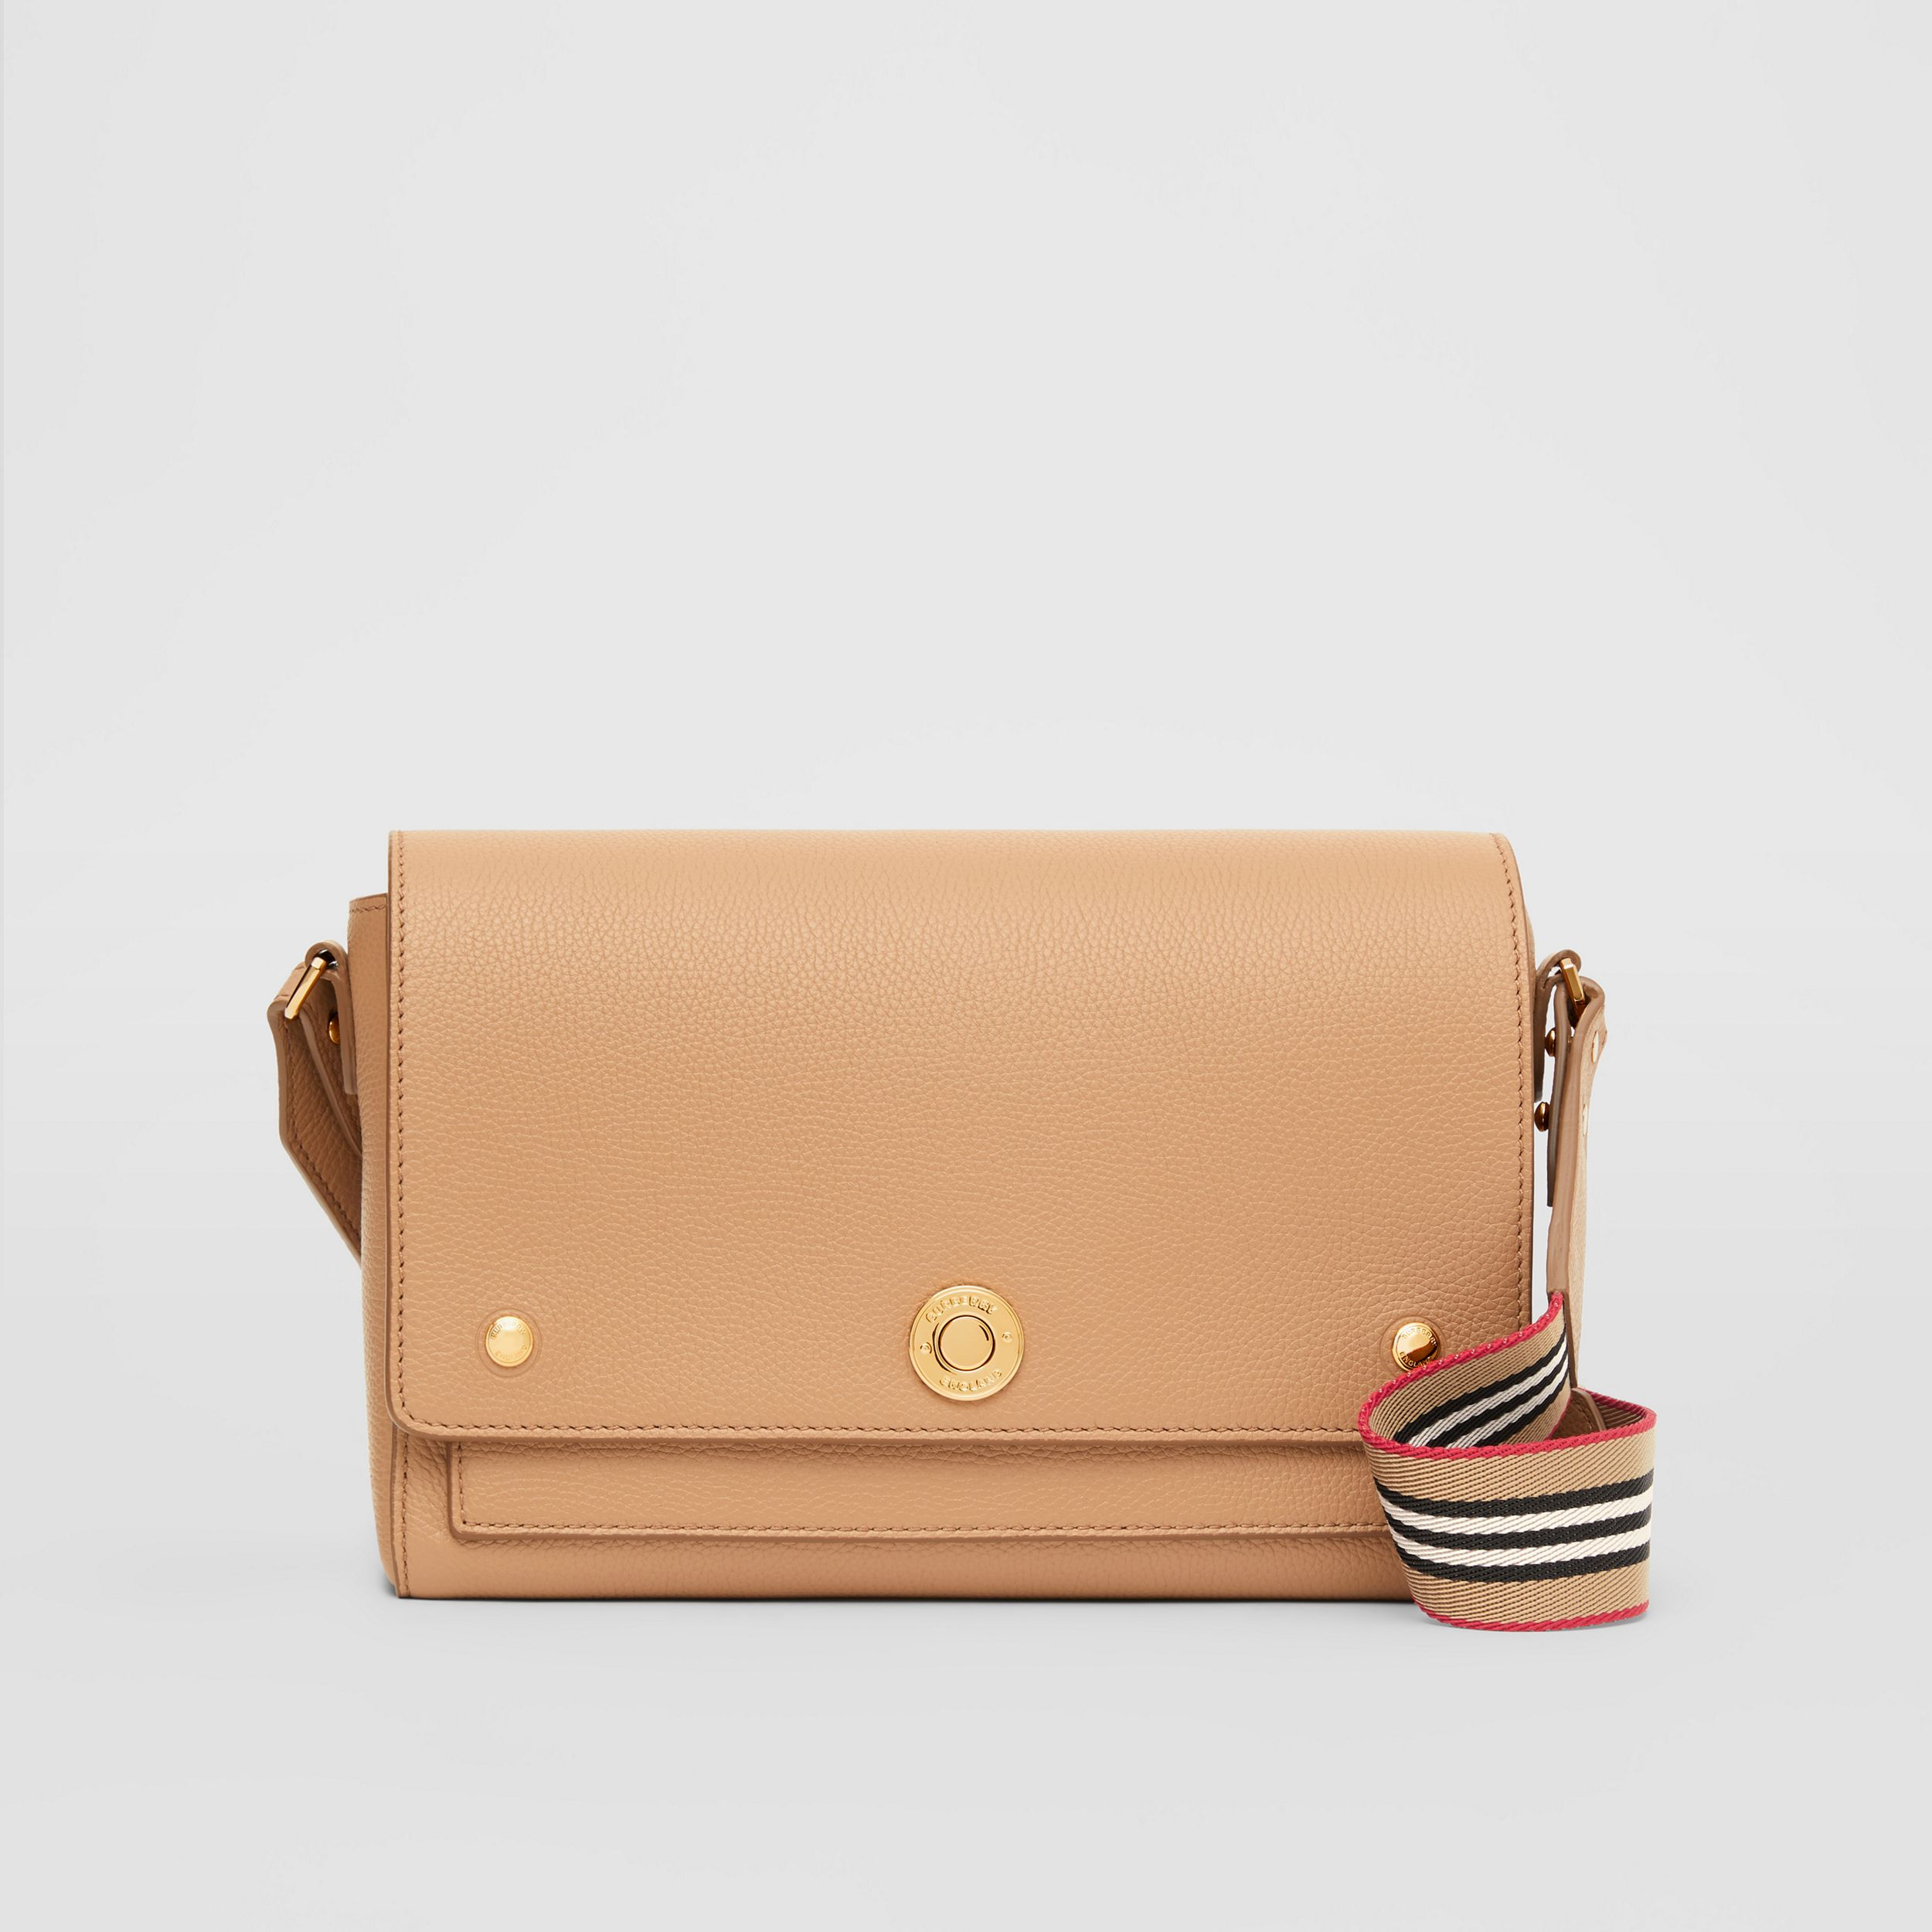 Grainy Leather Note Crossbody Bag in Camel - Women | Burberry - 1